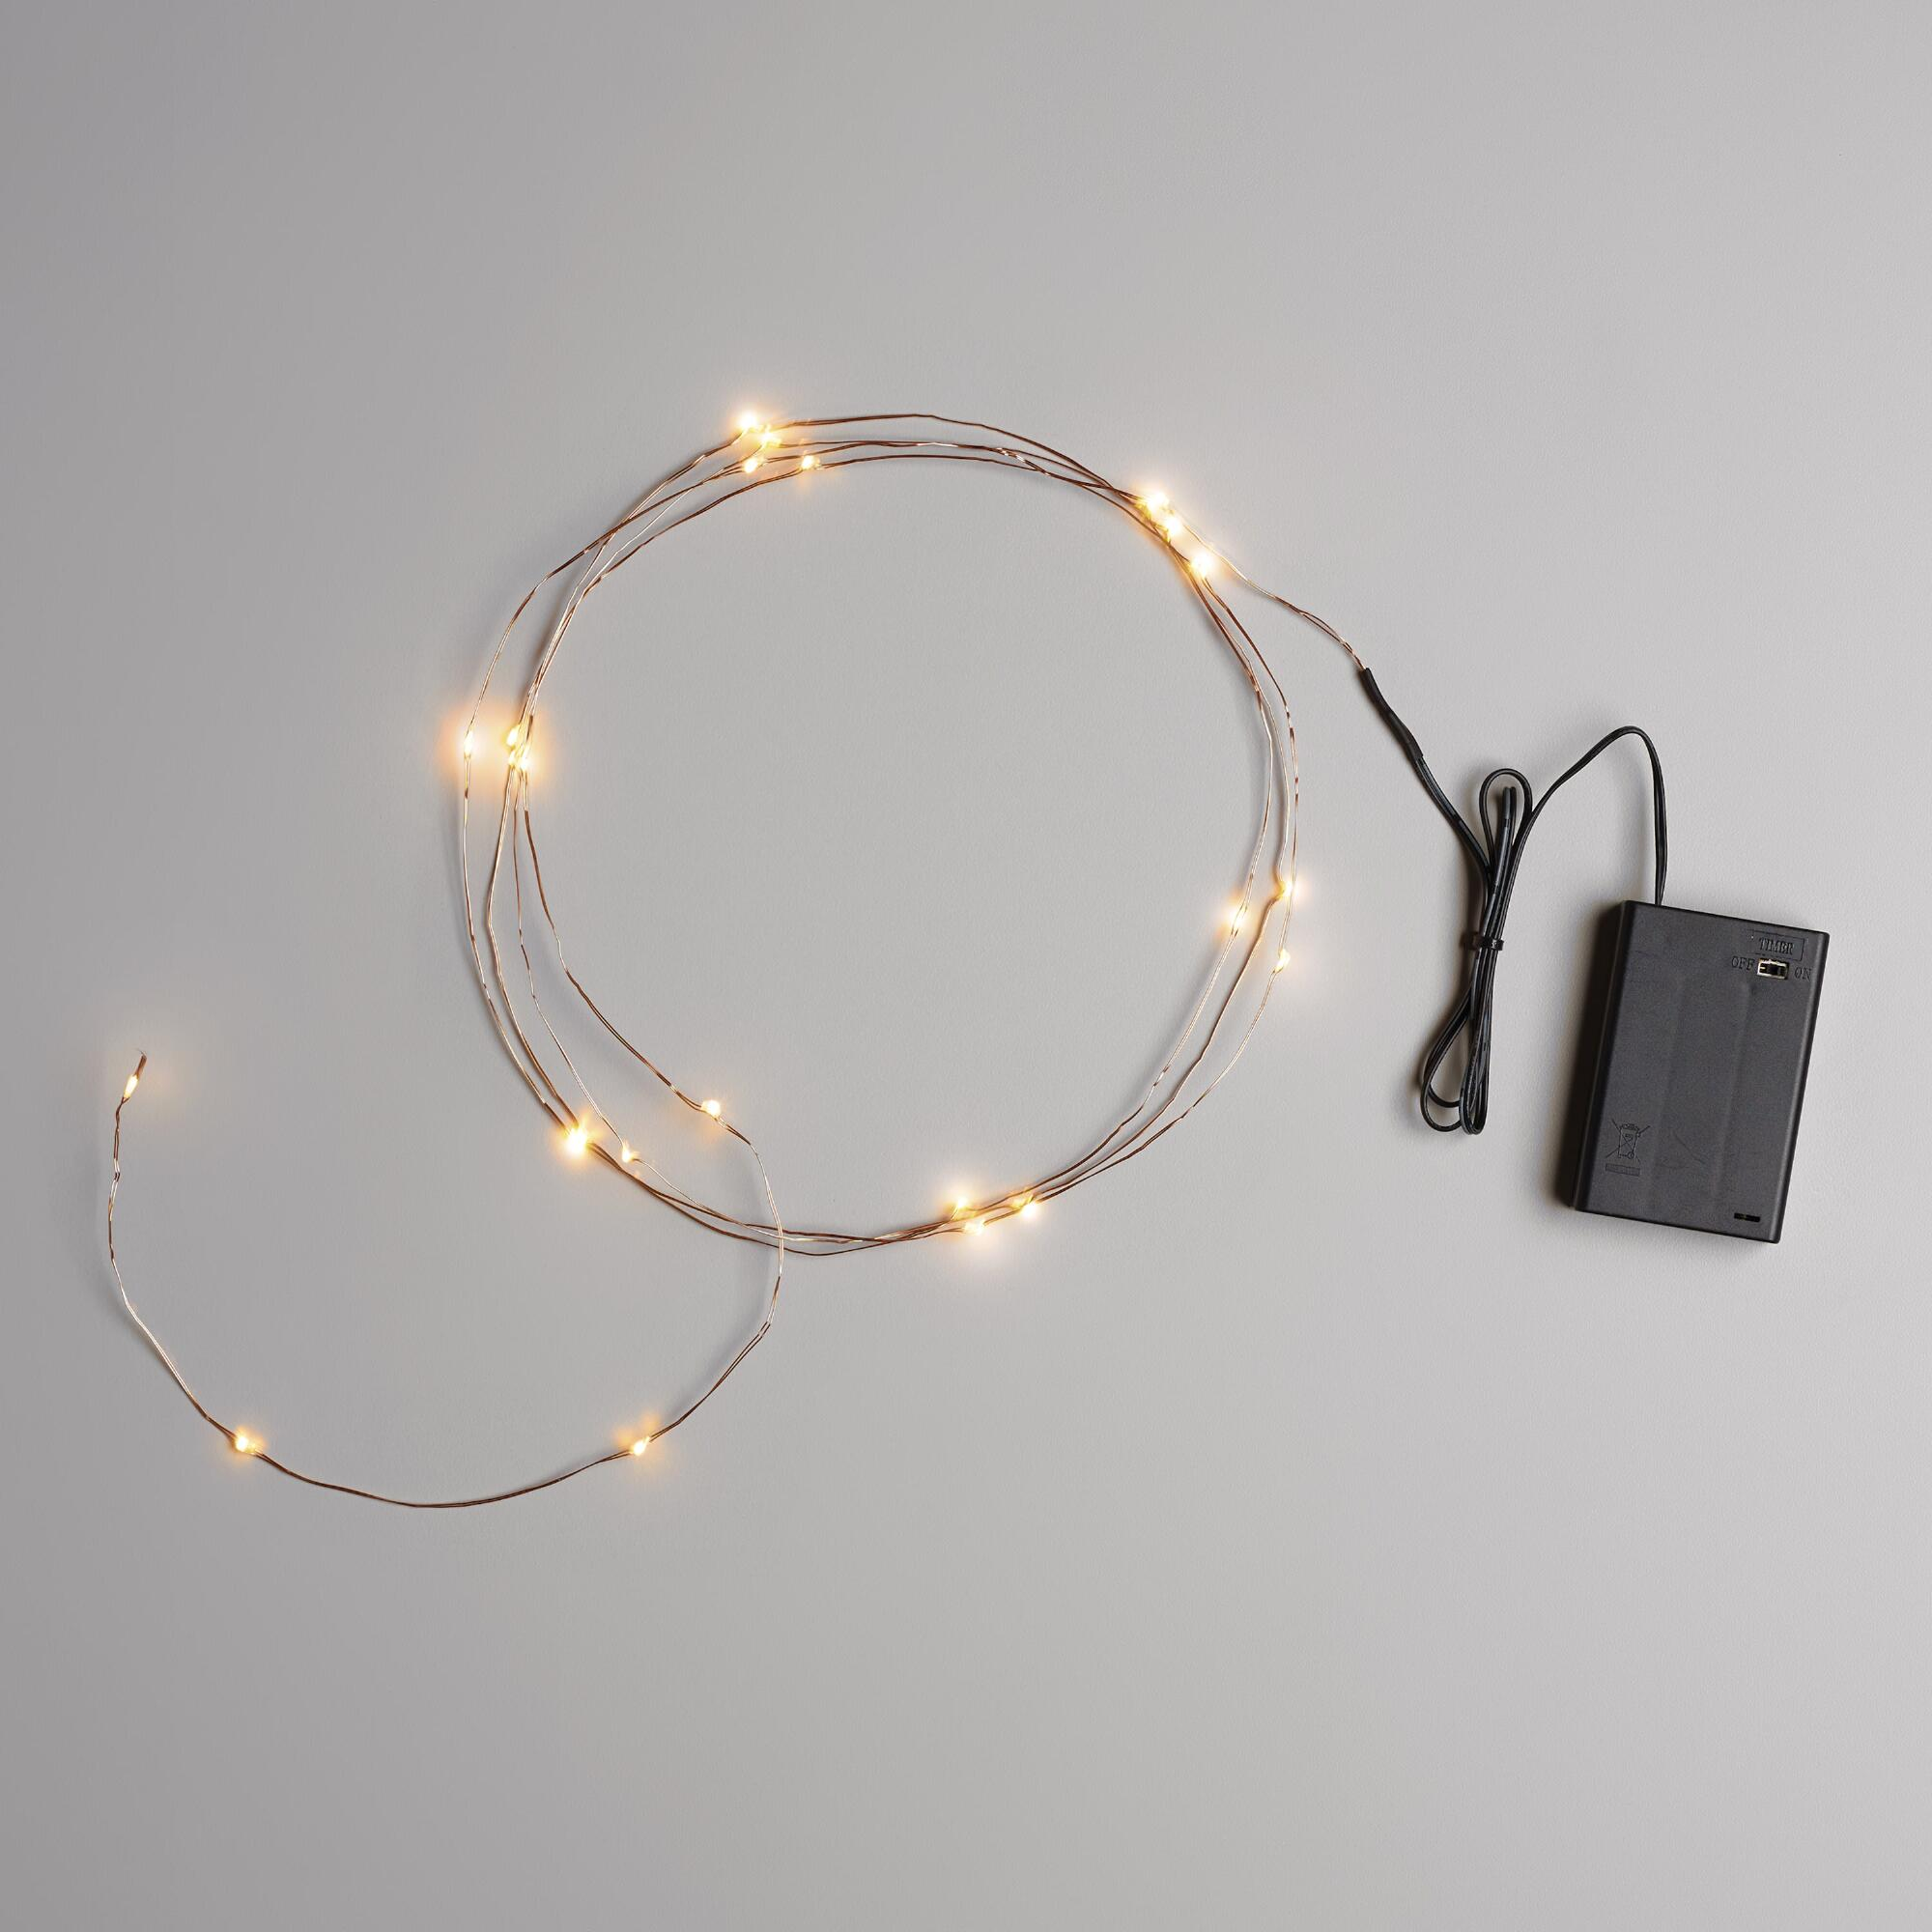 String Lights With Battery: Copper Micro LED 25-Bulb Battery Operated String Lights